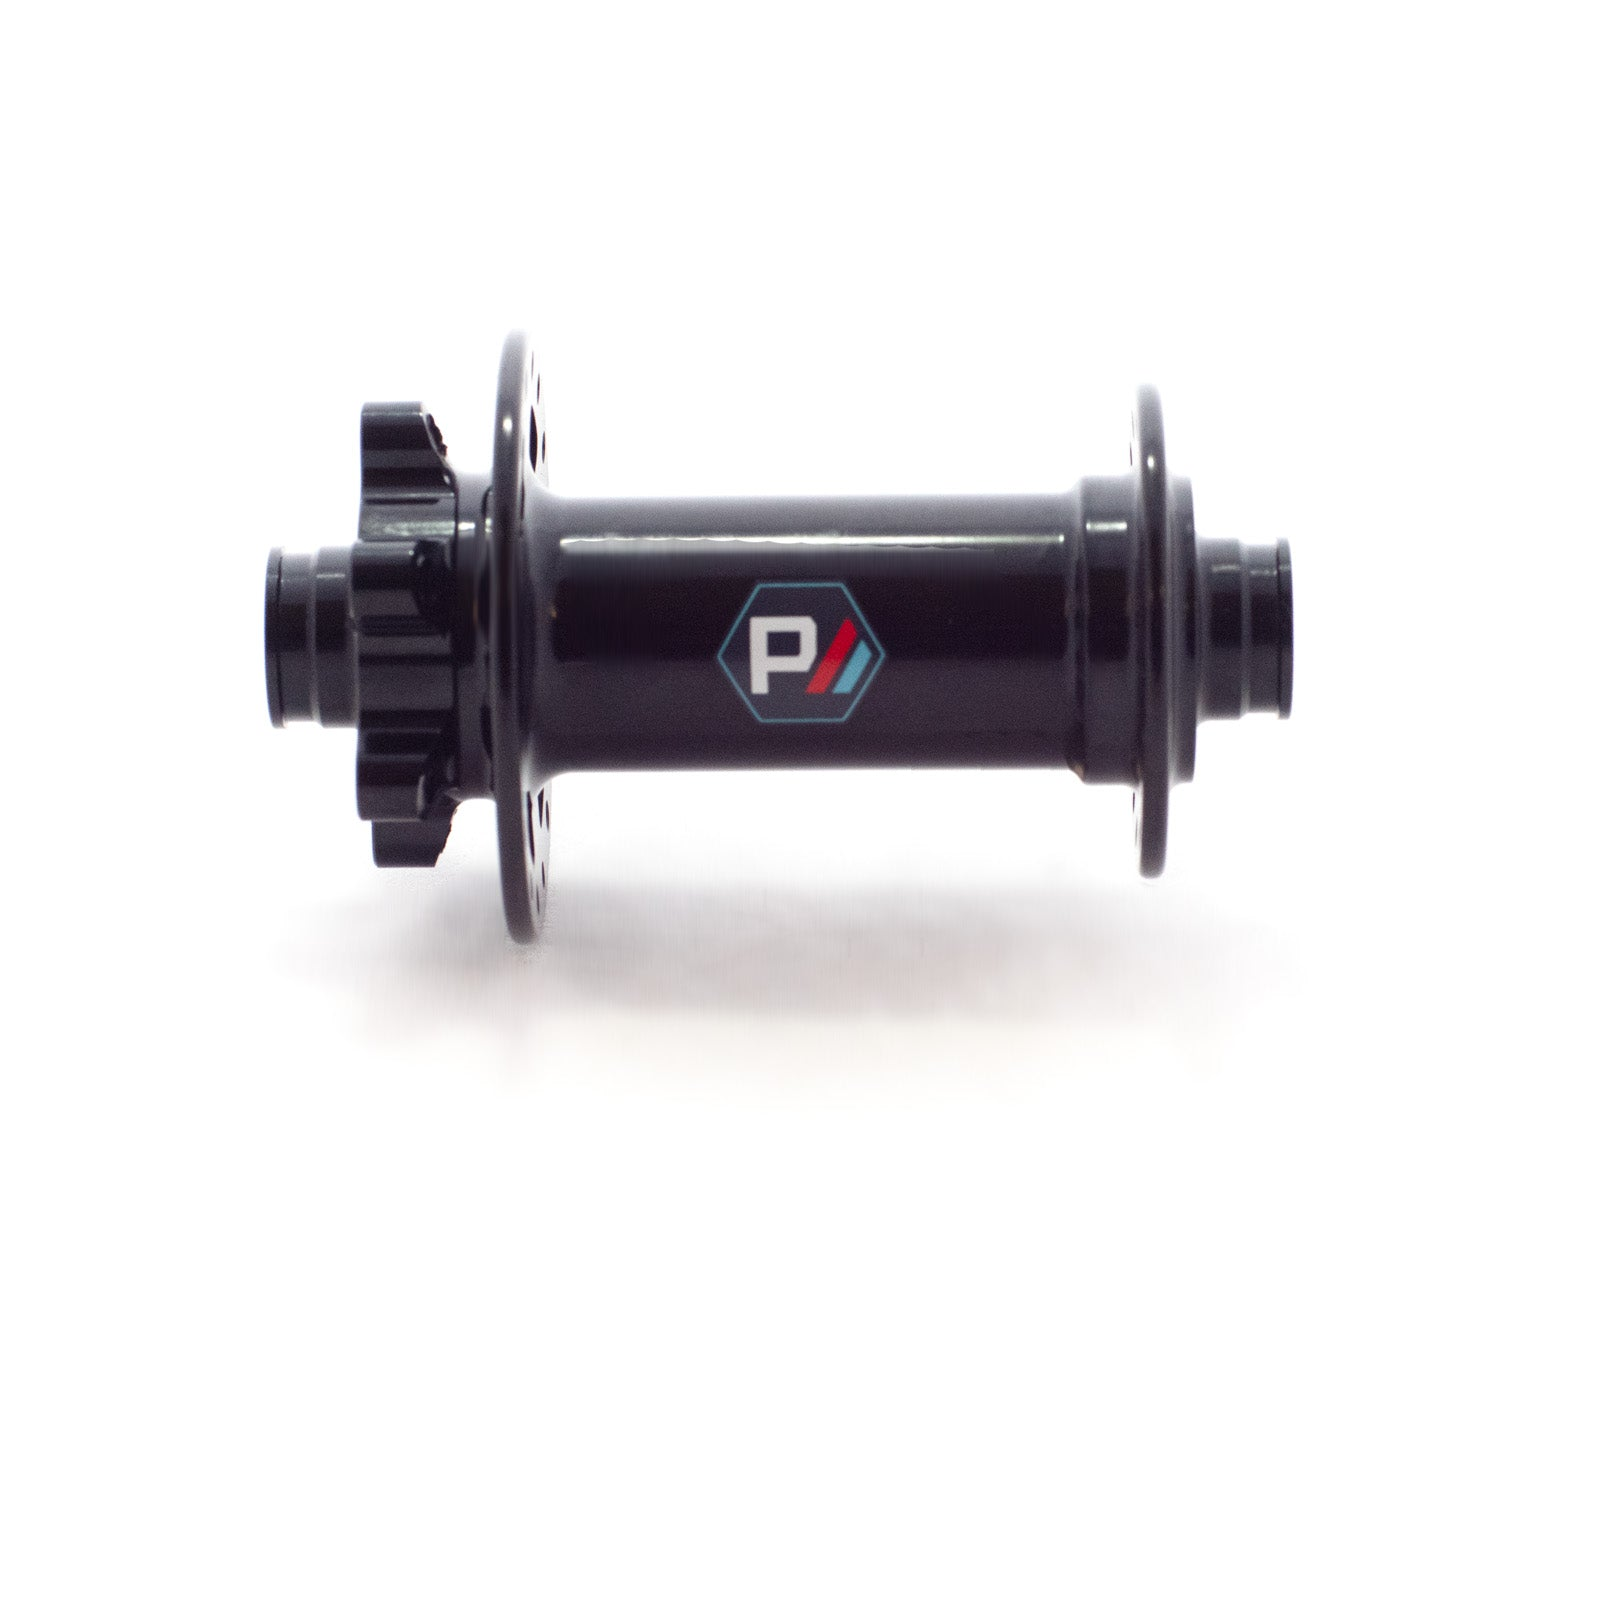 Pacenti MTB hub 6bolt Disc Front BOOST 110x15mm